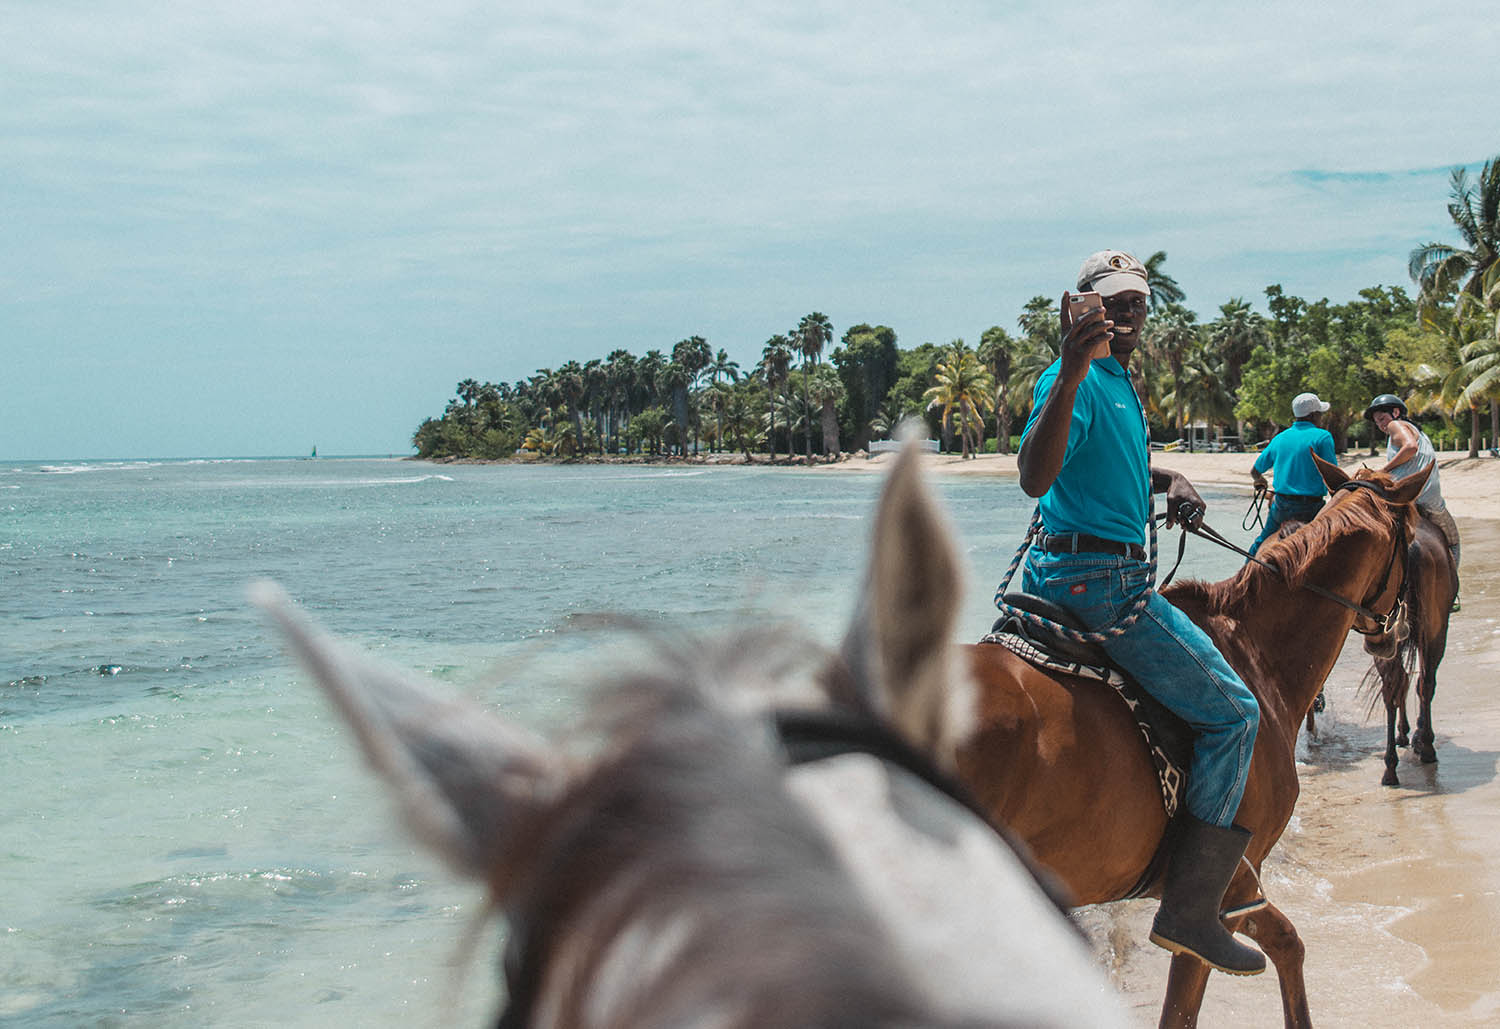 Horse-back riding on Half Moon Beach in Jamaica